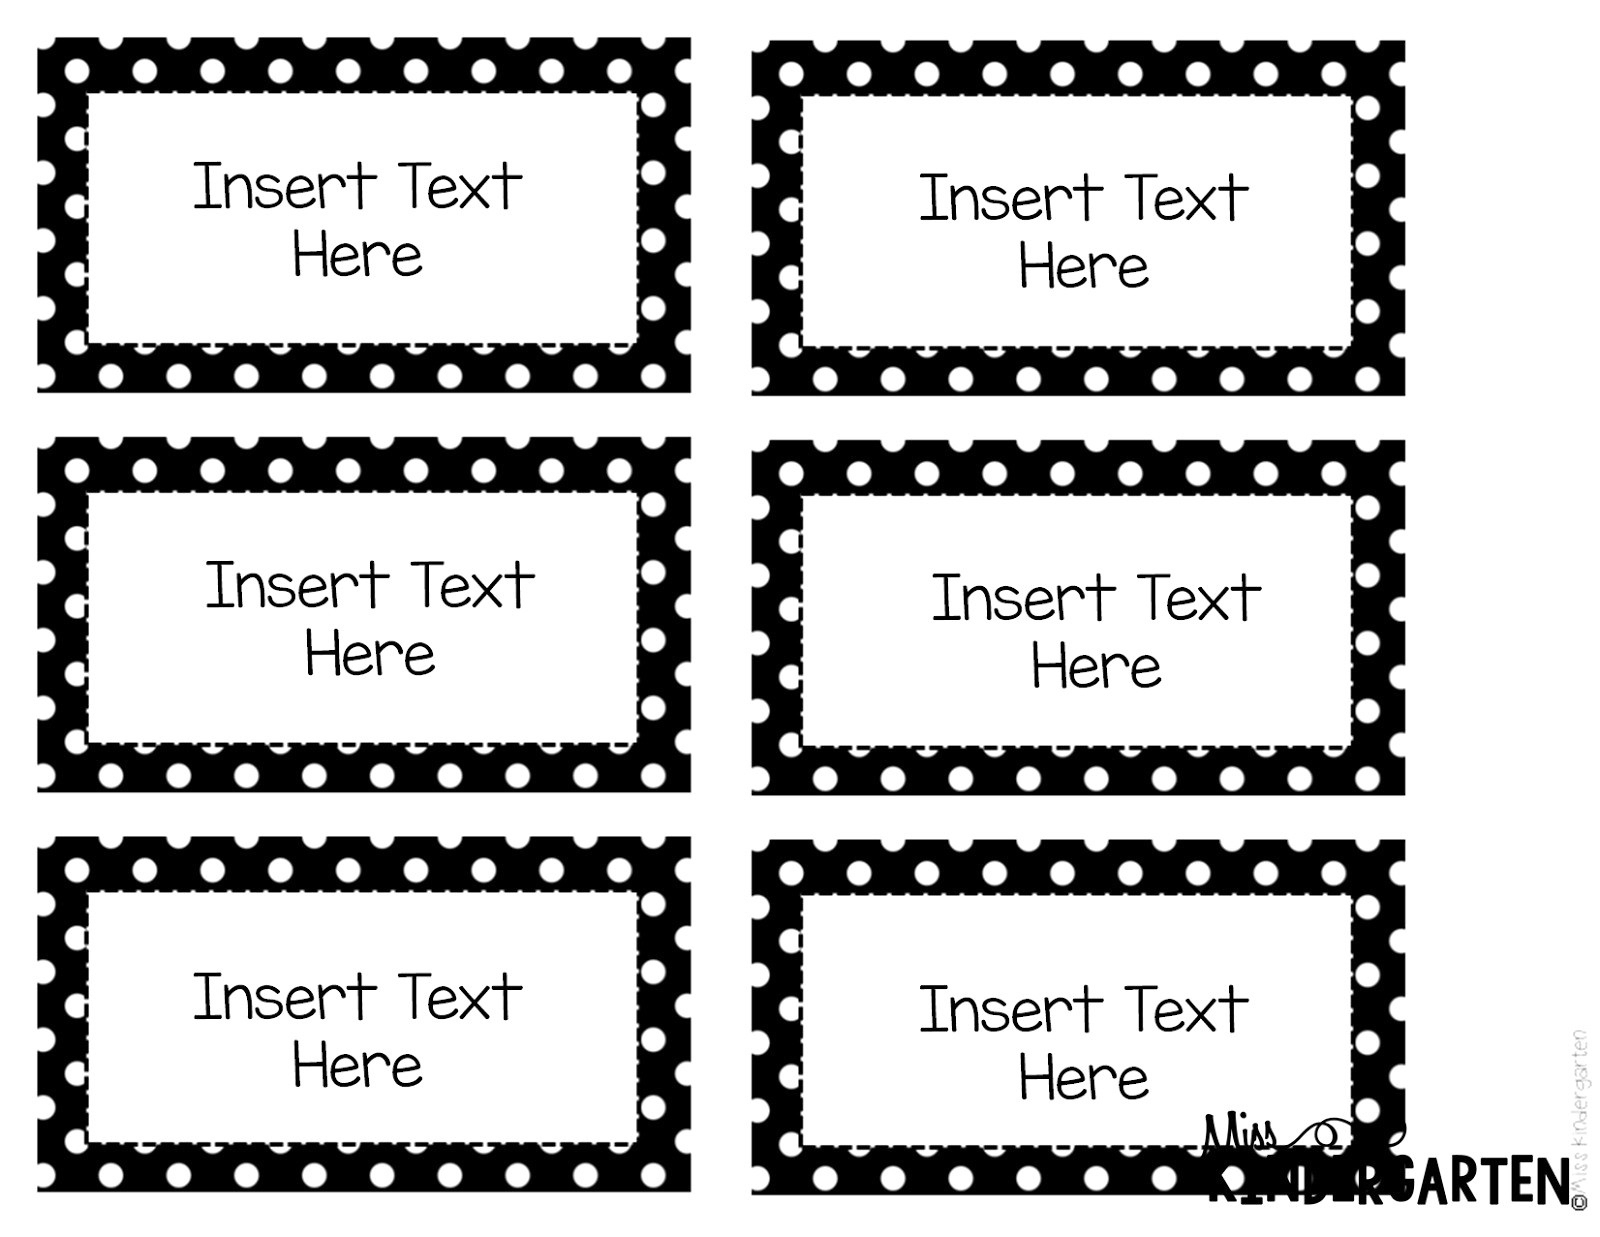 Free Editable Printable Labels | Chart And Printable World - Free Editable Printable Labels